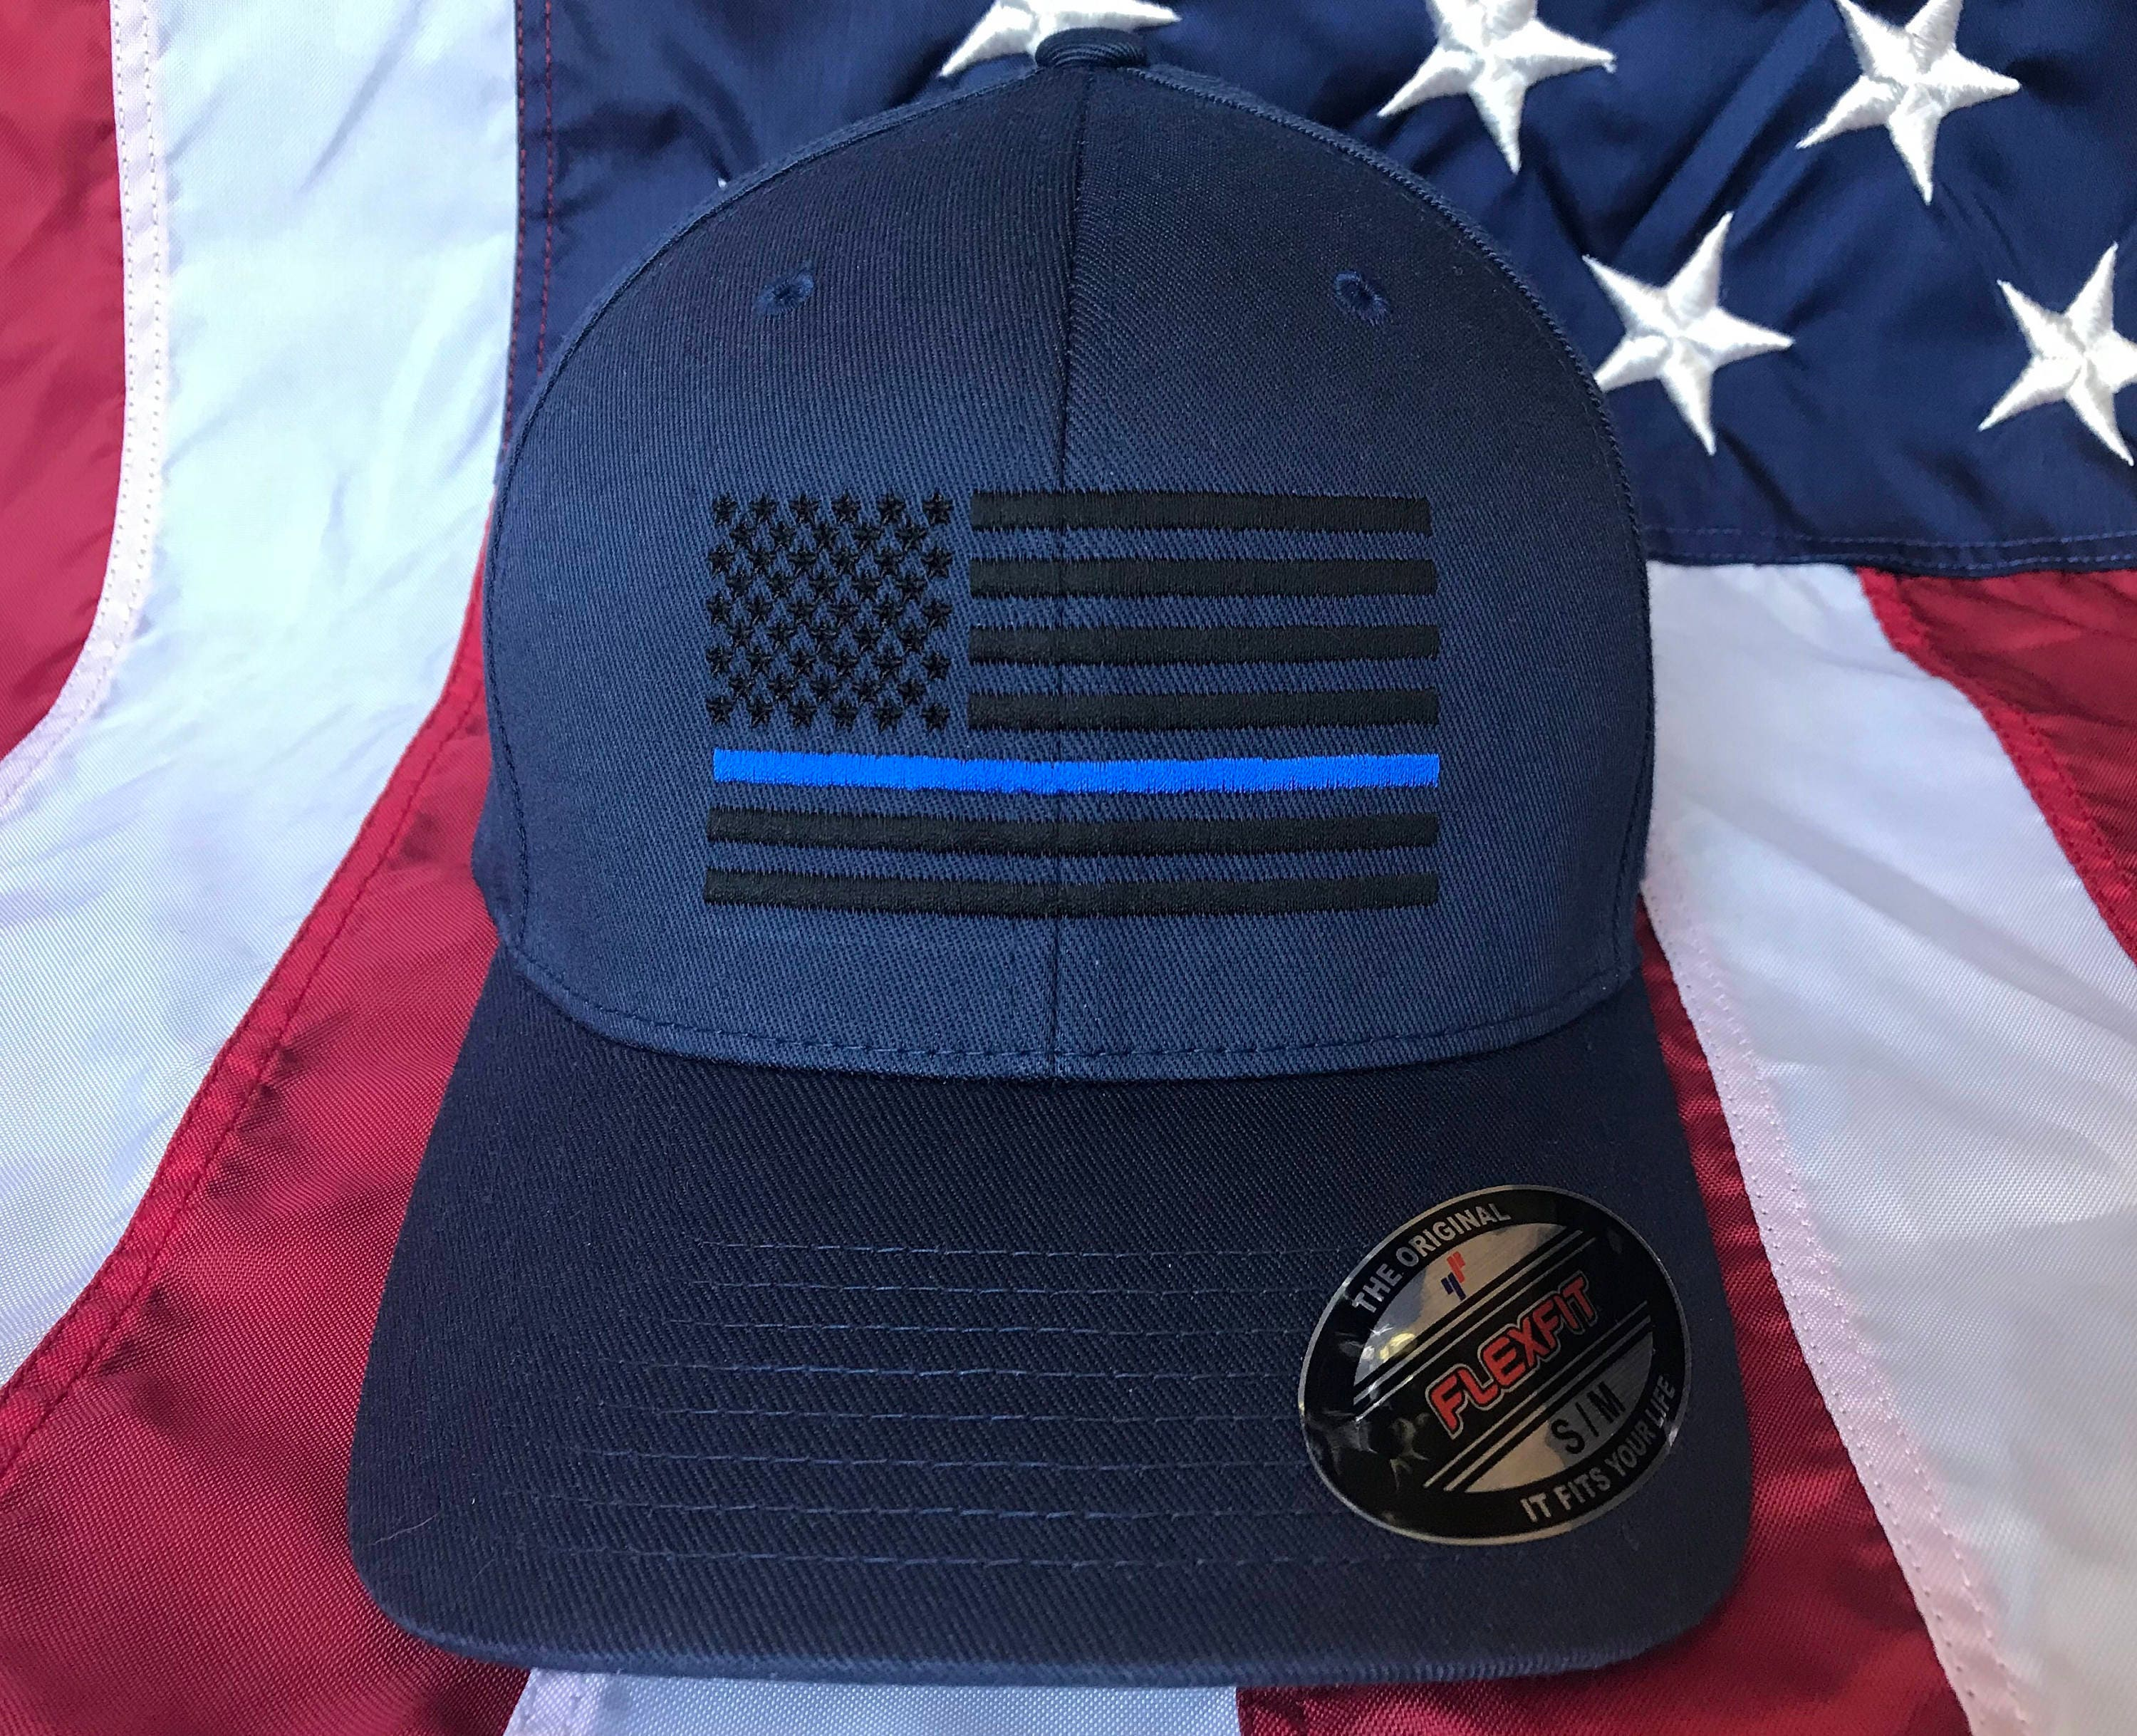 e5e748520 Free personalization, Men's Thin blue line police officer blacked ...